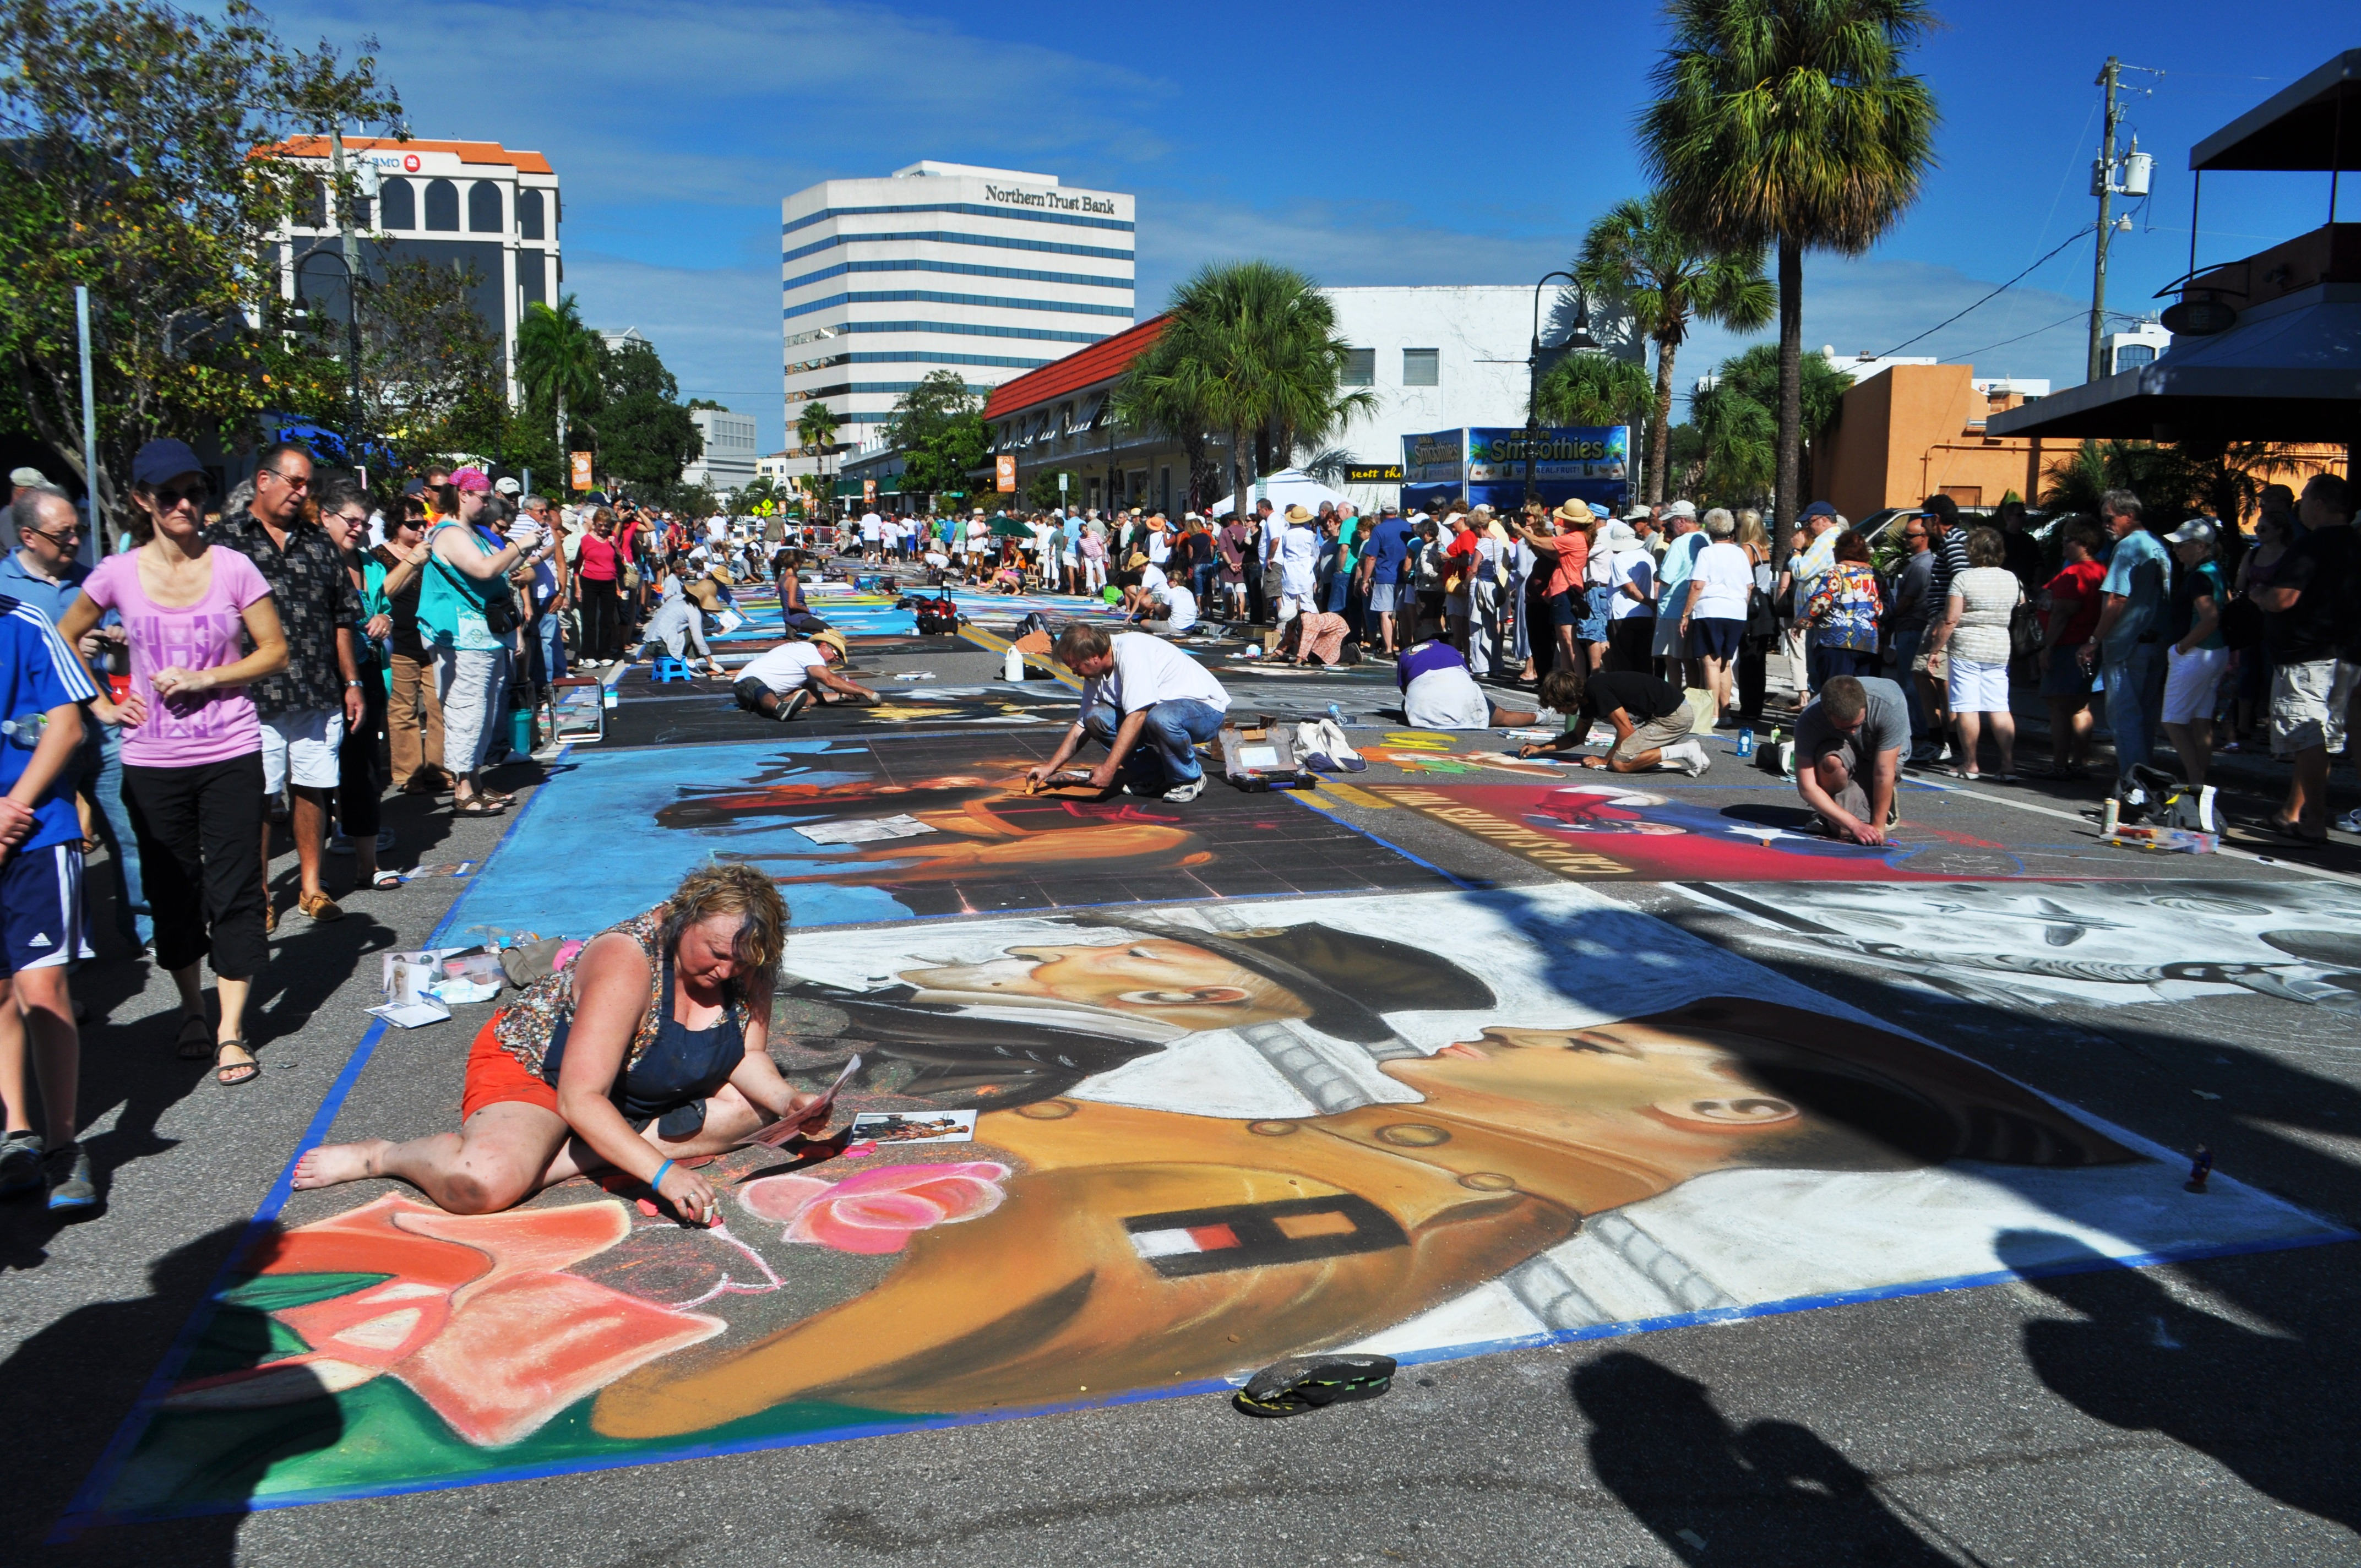 More than 500 Artists from Around the World Participate in the Annual Sarasota Chalk Festival, Fla., Nov. 17, 2013